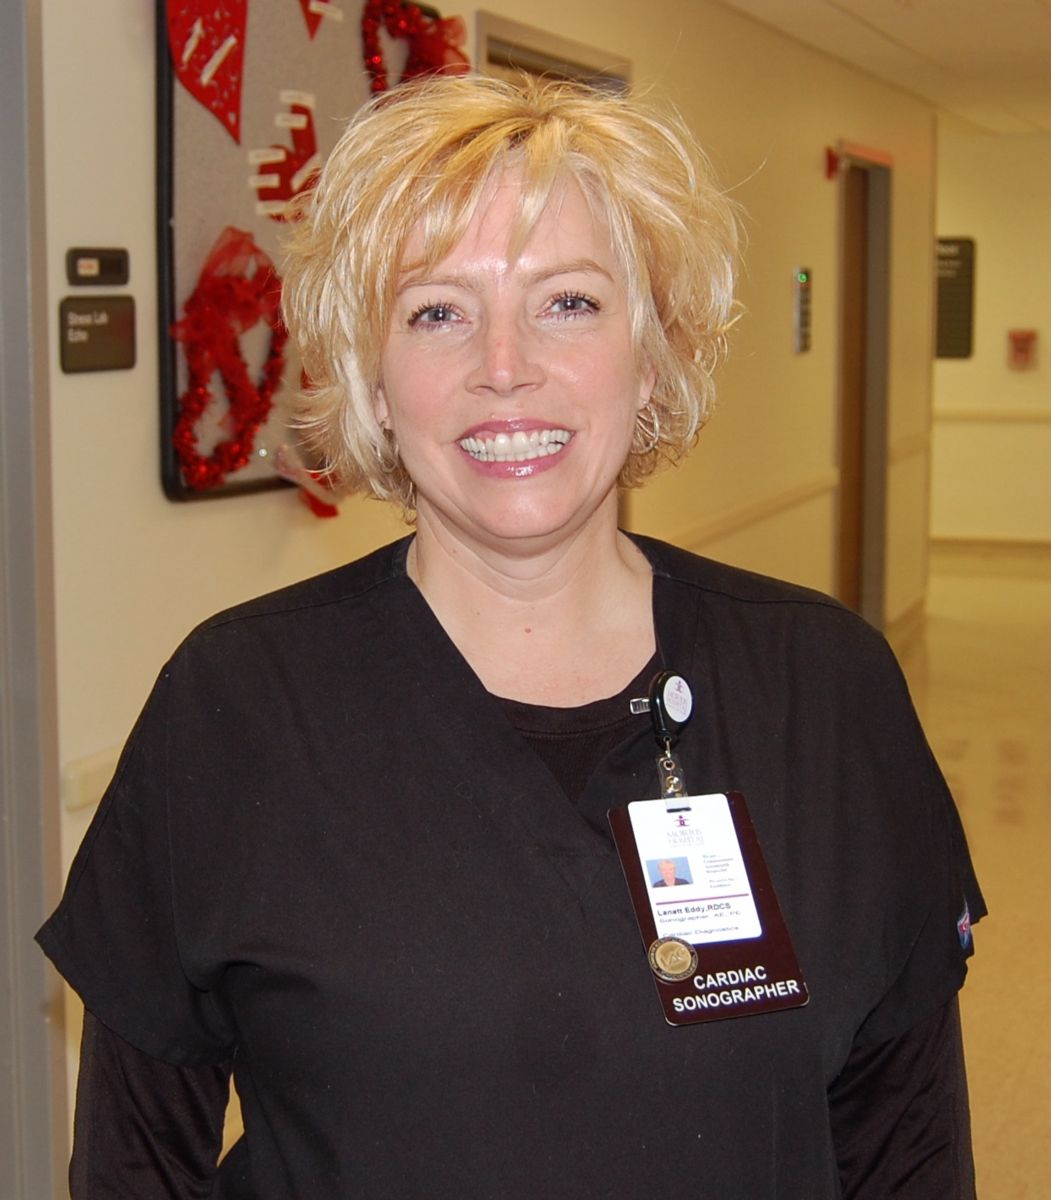 morris hospital honors cardiac sonographer as fire starter of the